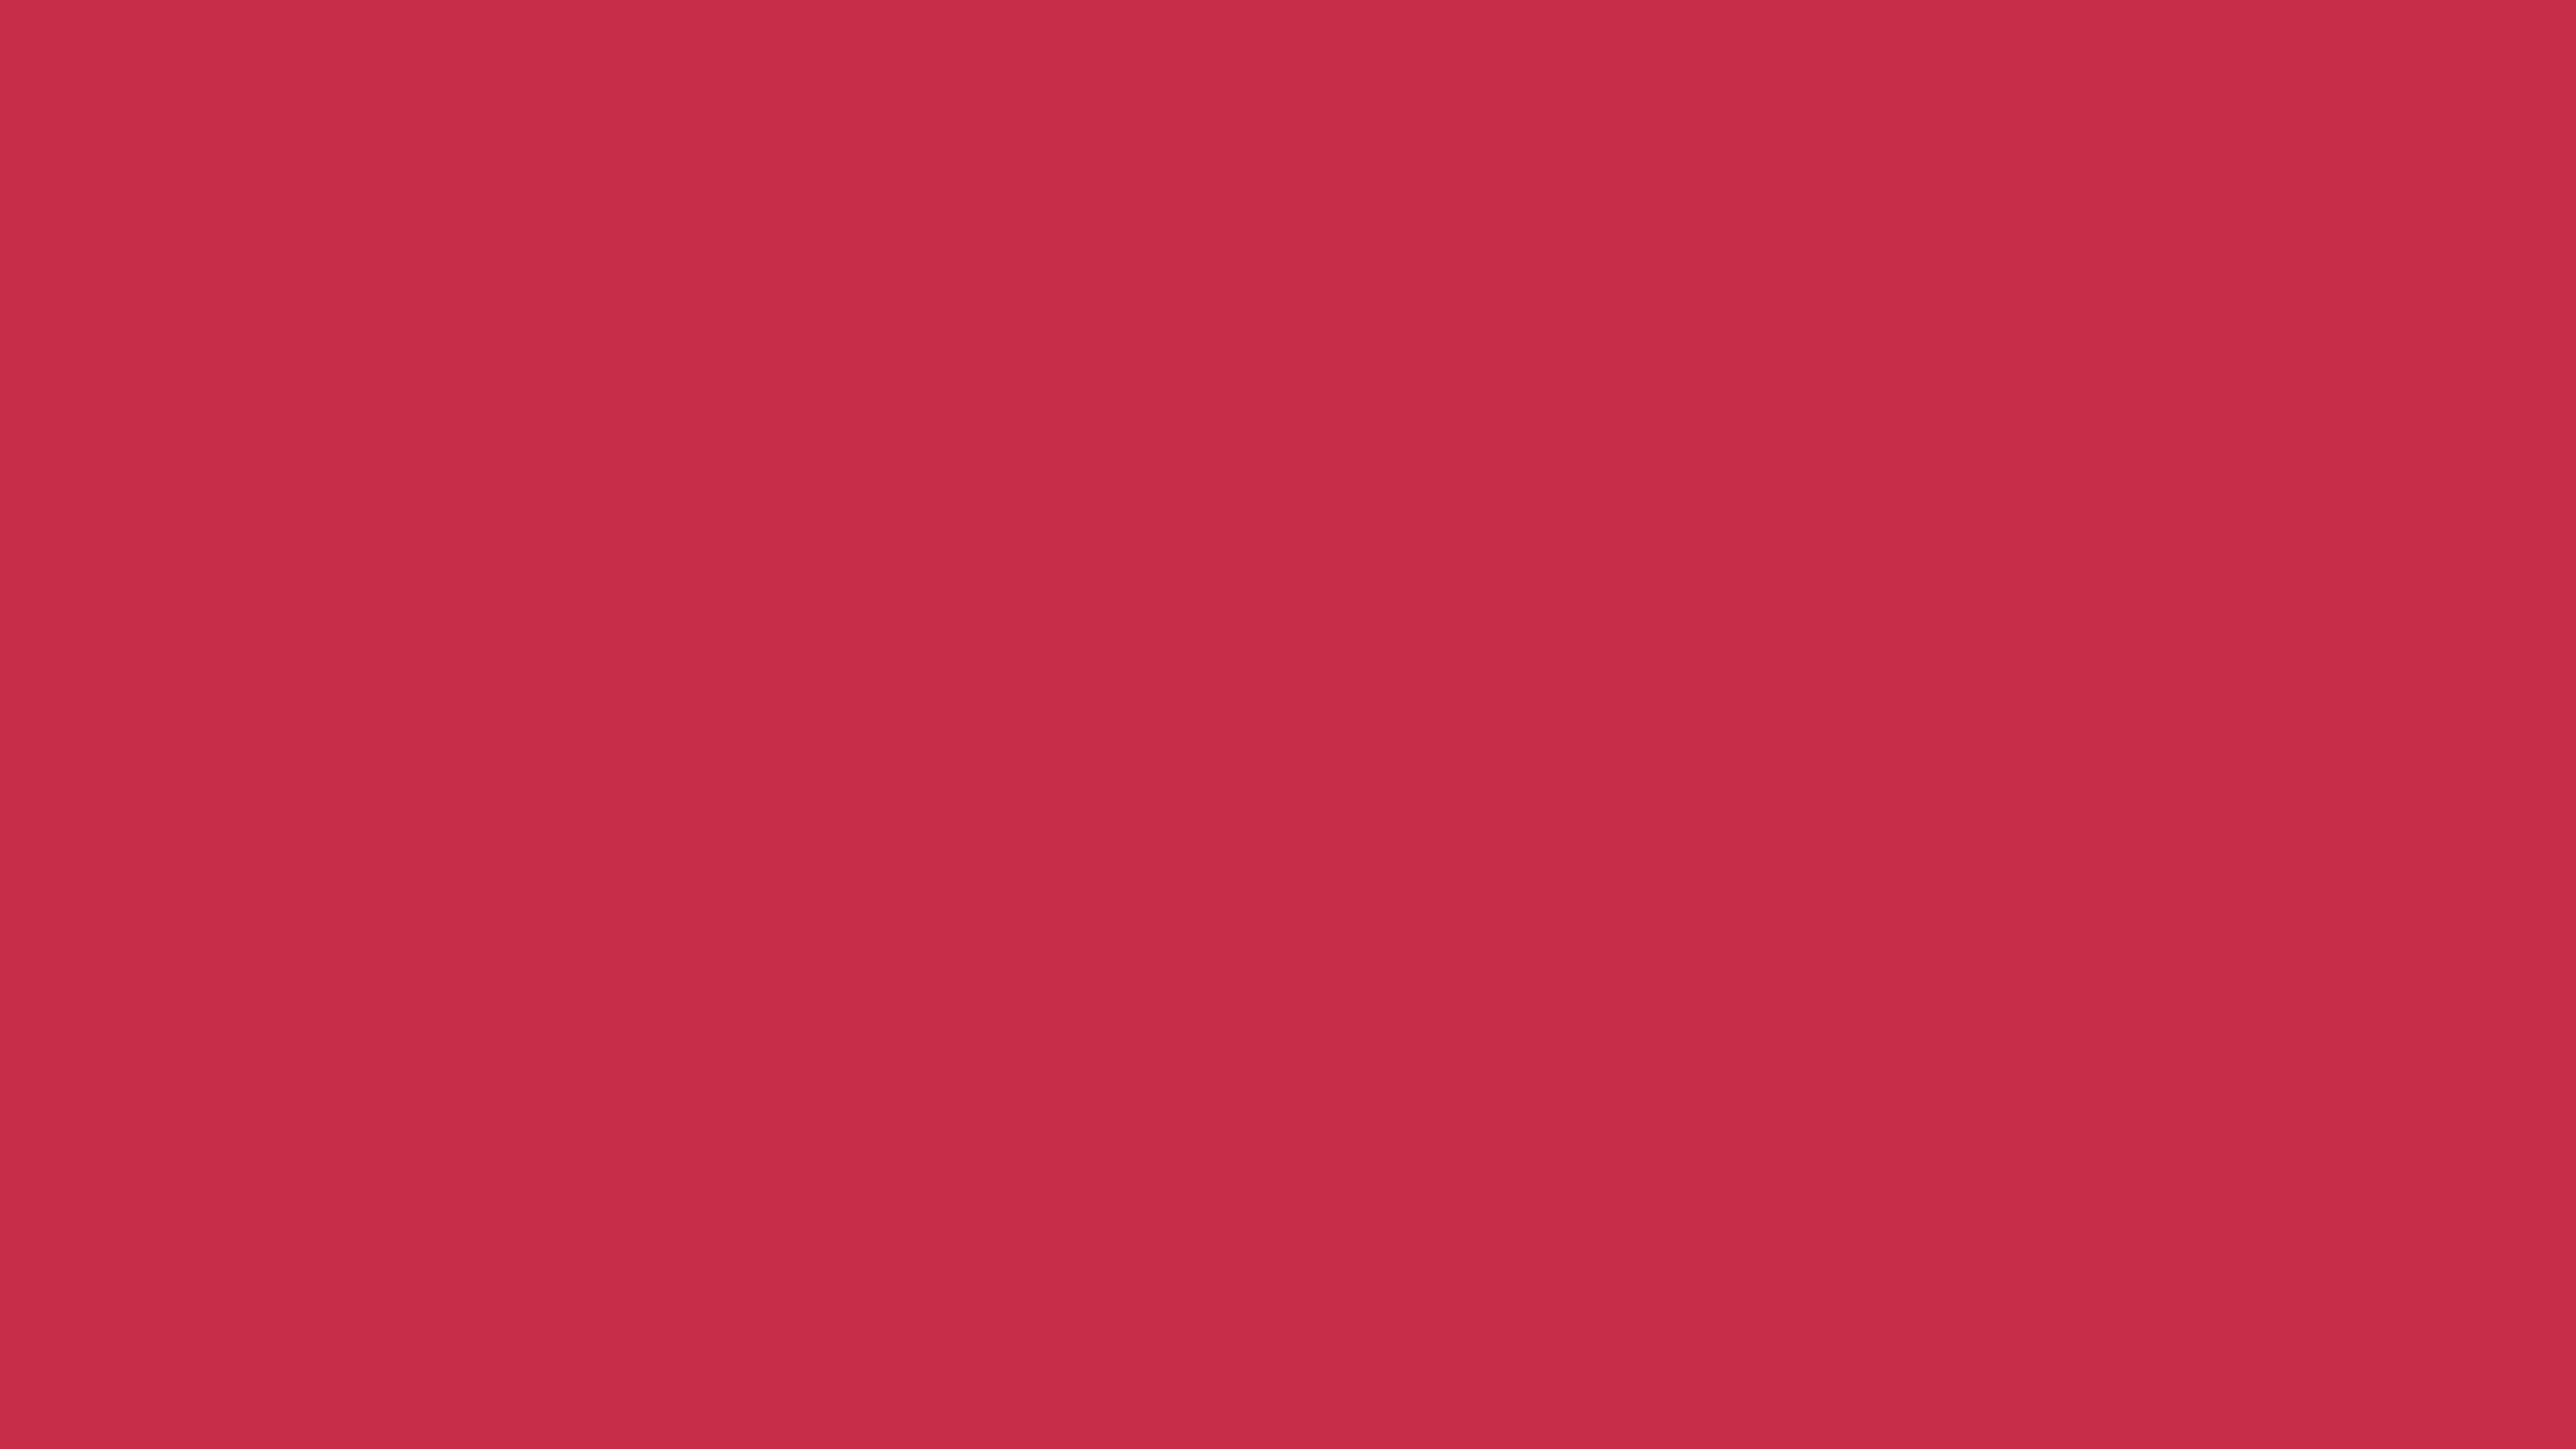 7680x4320 French Raspberry Solid Color Background